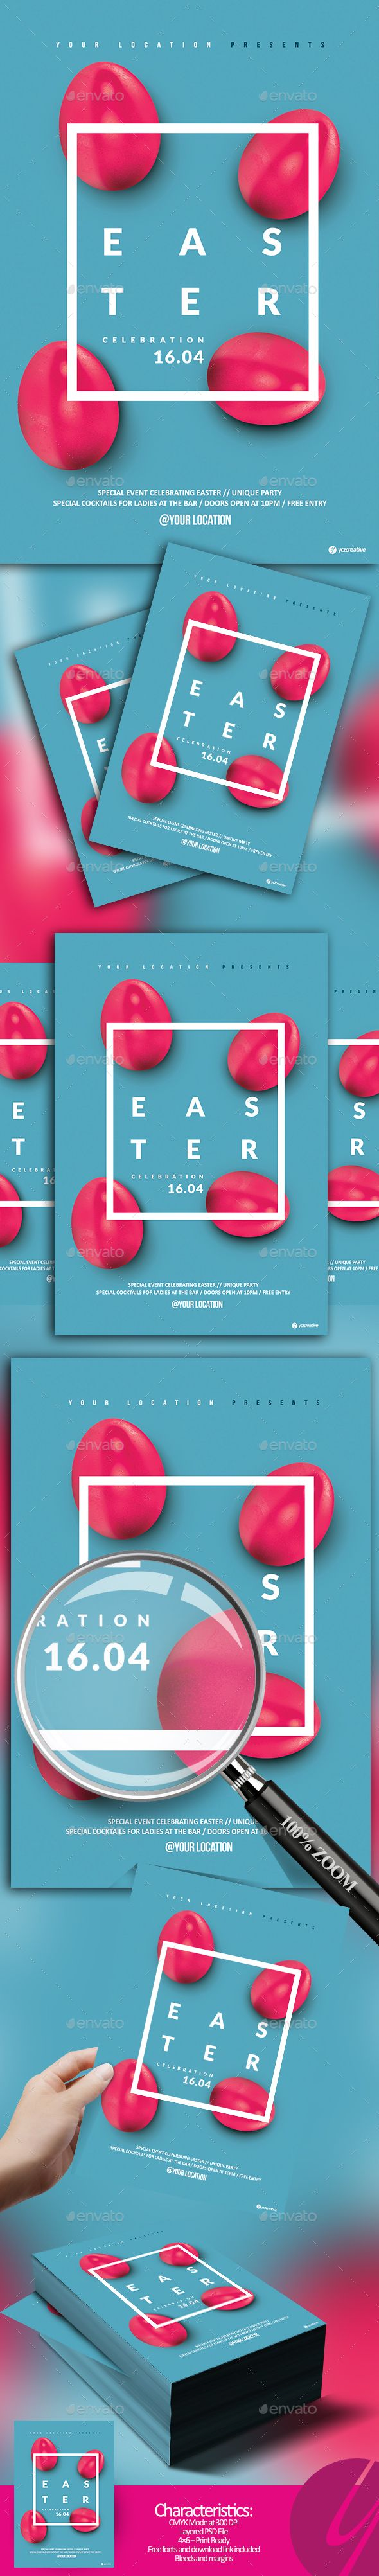 Minimalistic Easter Flyer — Photoshop PSD #4x6 #eggs • Download ➝ https://graphicriver.net/item/minimalistic-easter-flyer/19743562?ref=pxcr